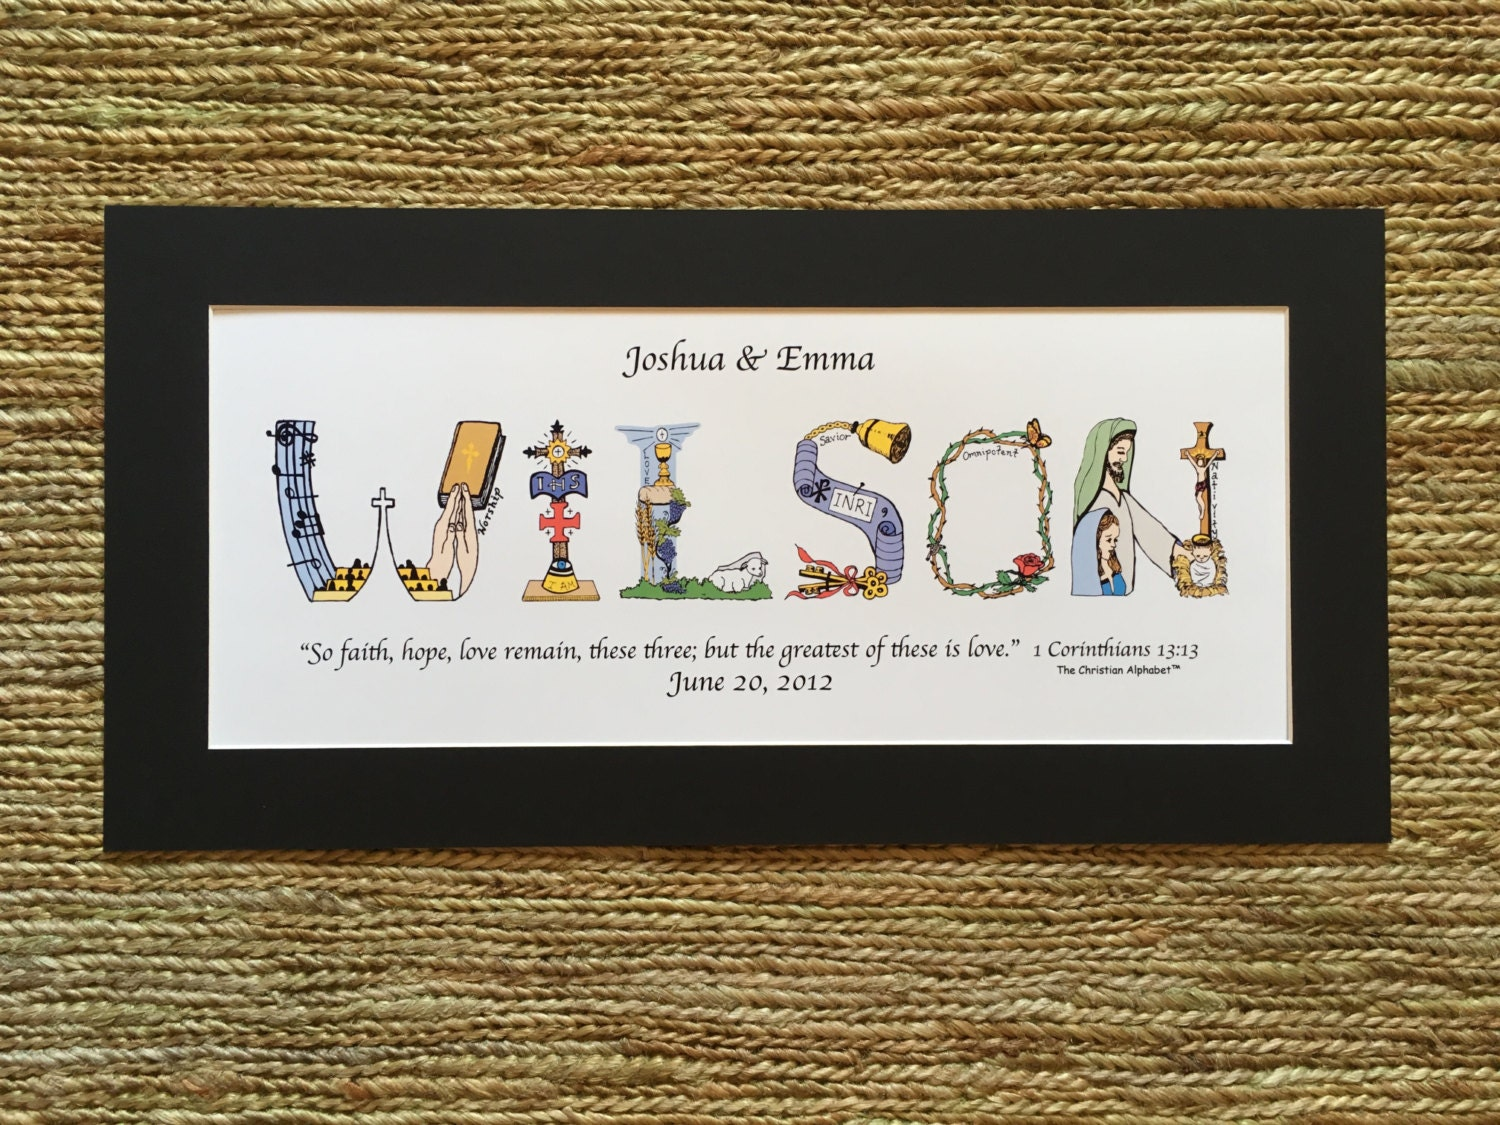 Personalized Wedding Gifts For Couples: Wedding Gifts For Couples Personalized Christian Gifts For